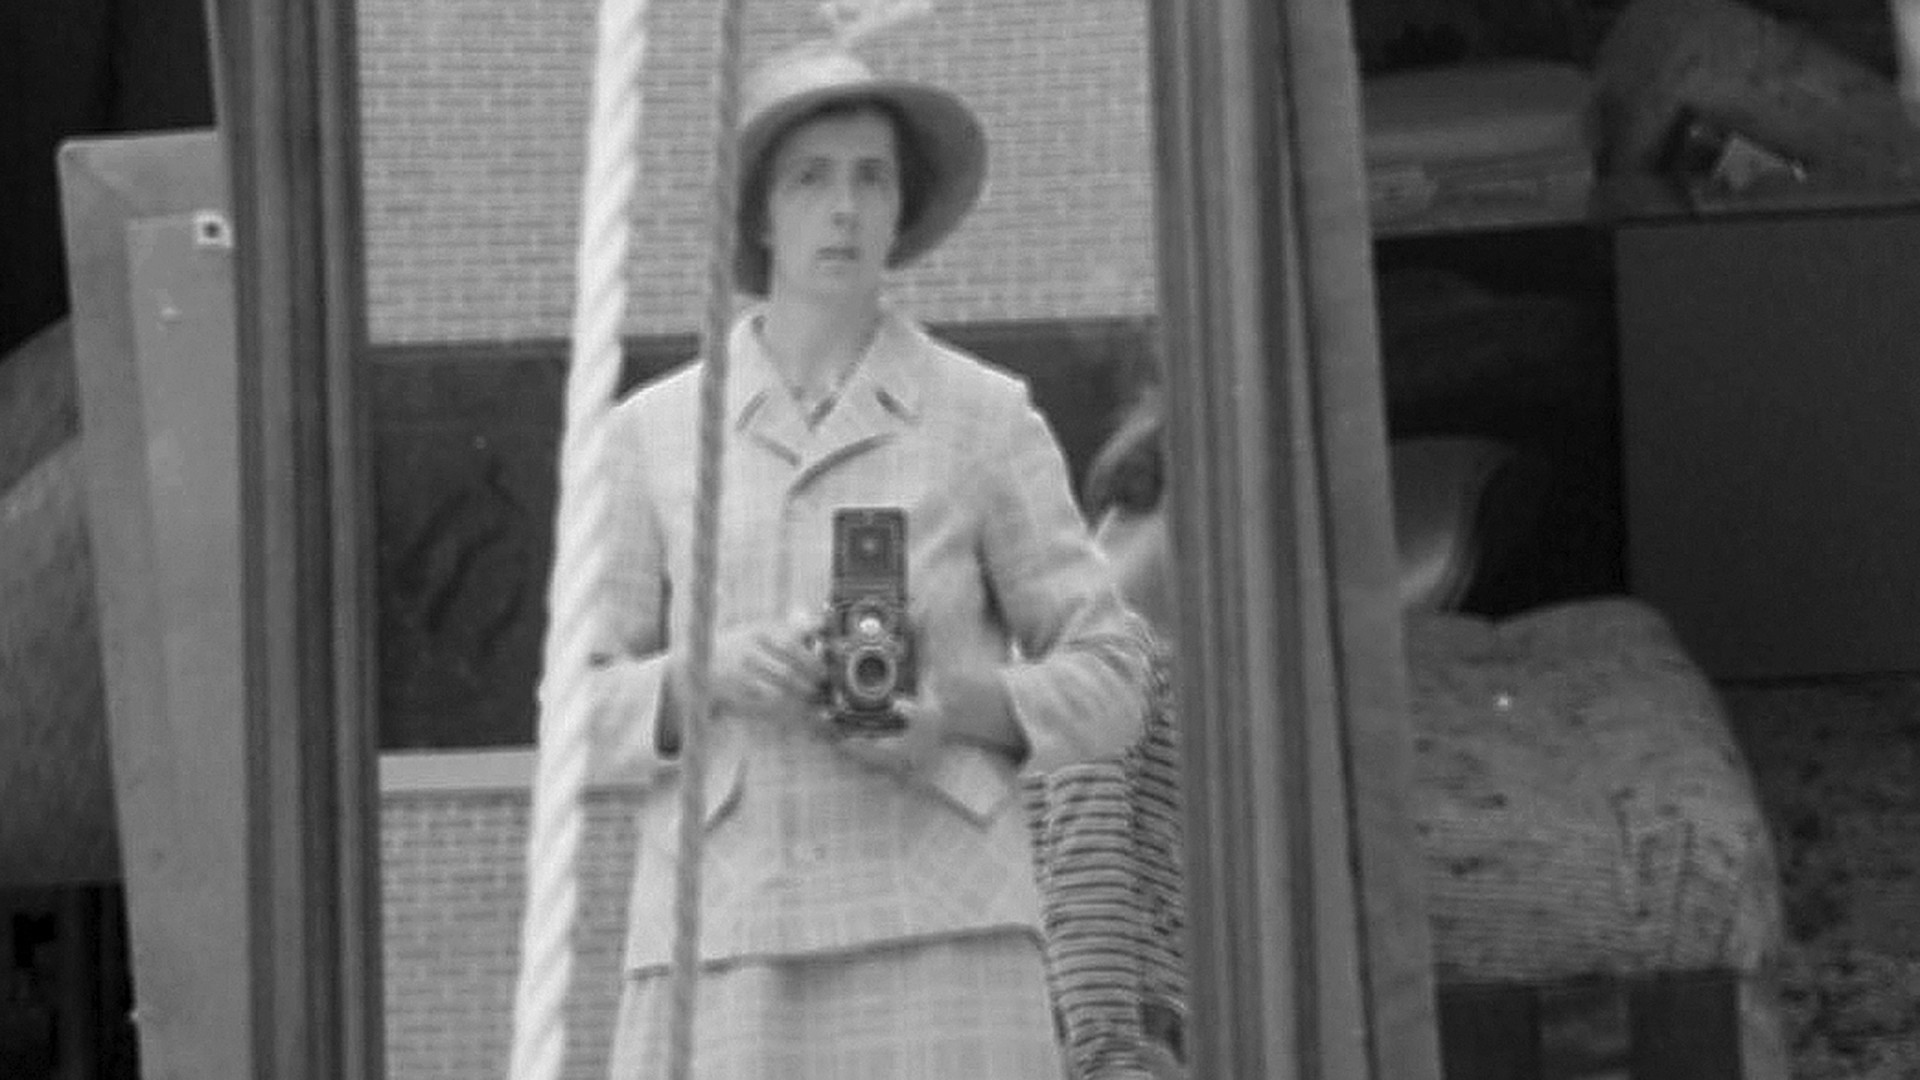 A new portrait of photographer Vivian Maier emerges in biography